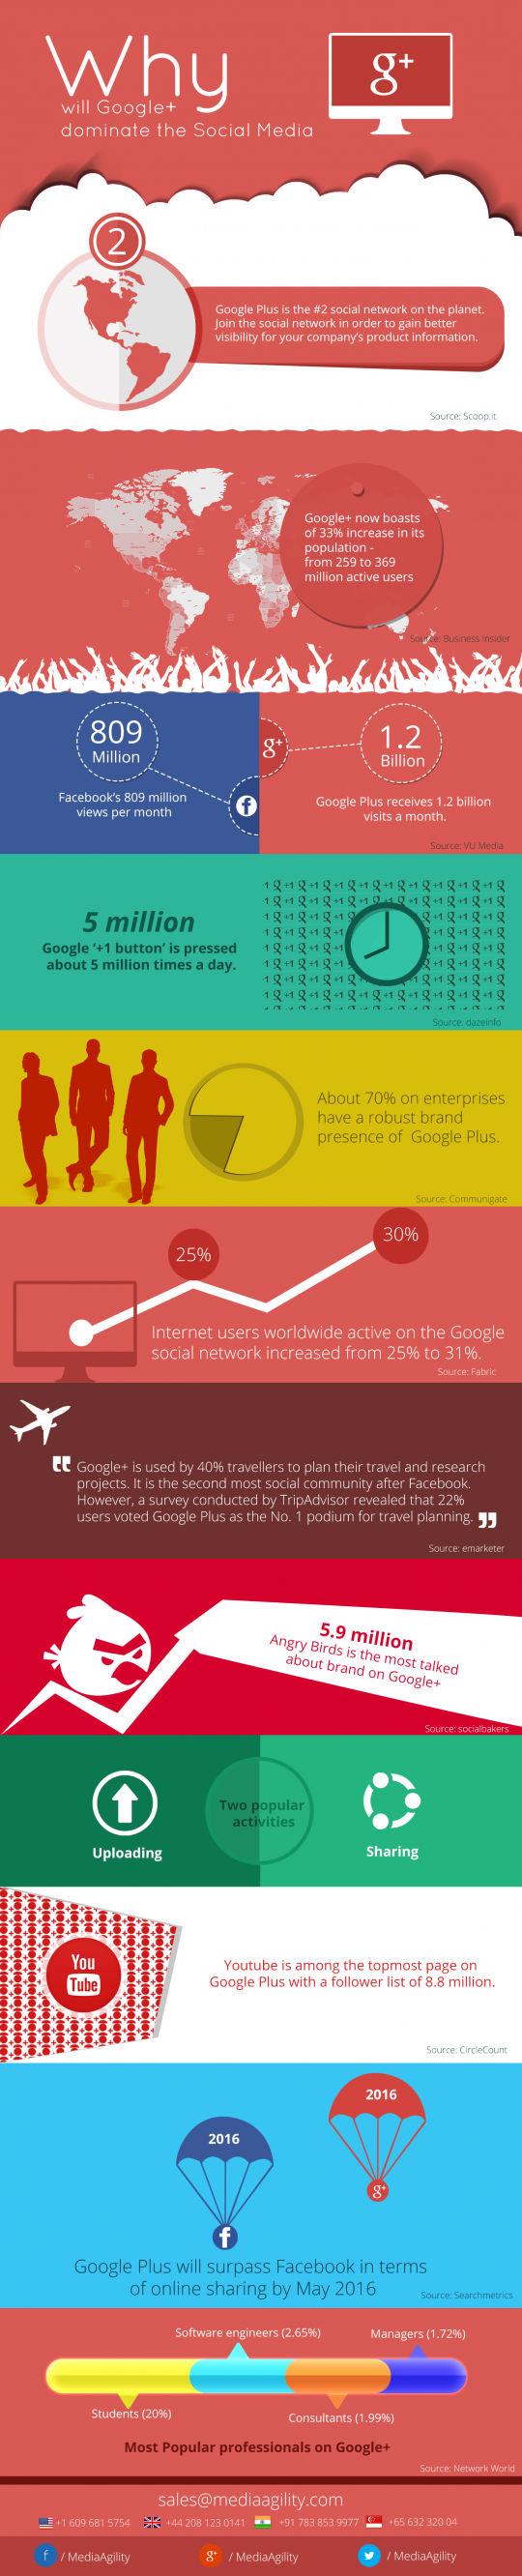 Why Will Google+ Dominate The Social Media